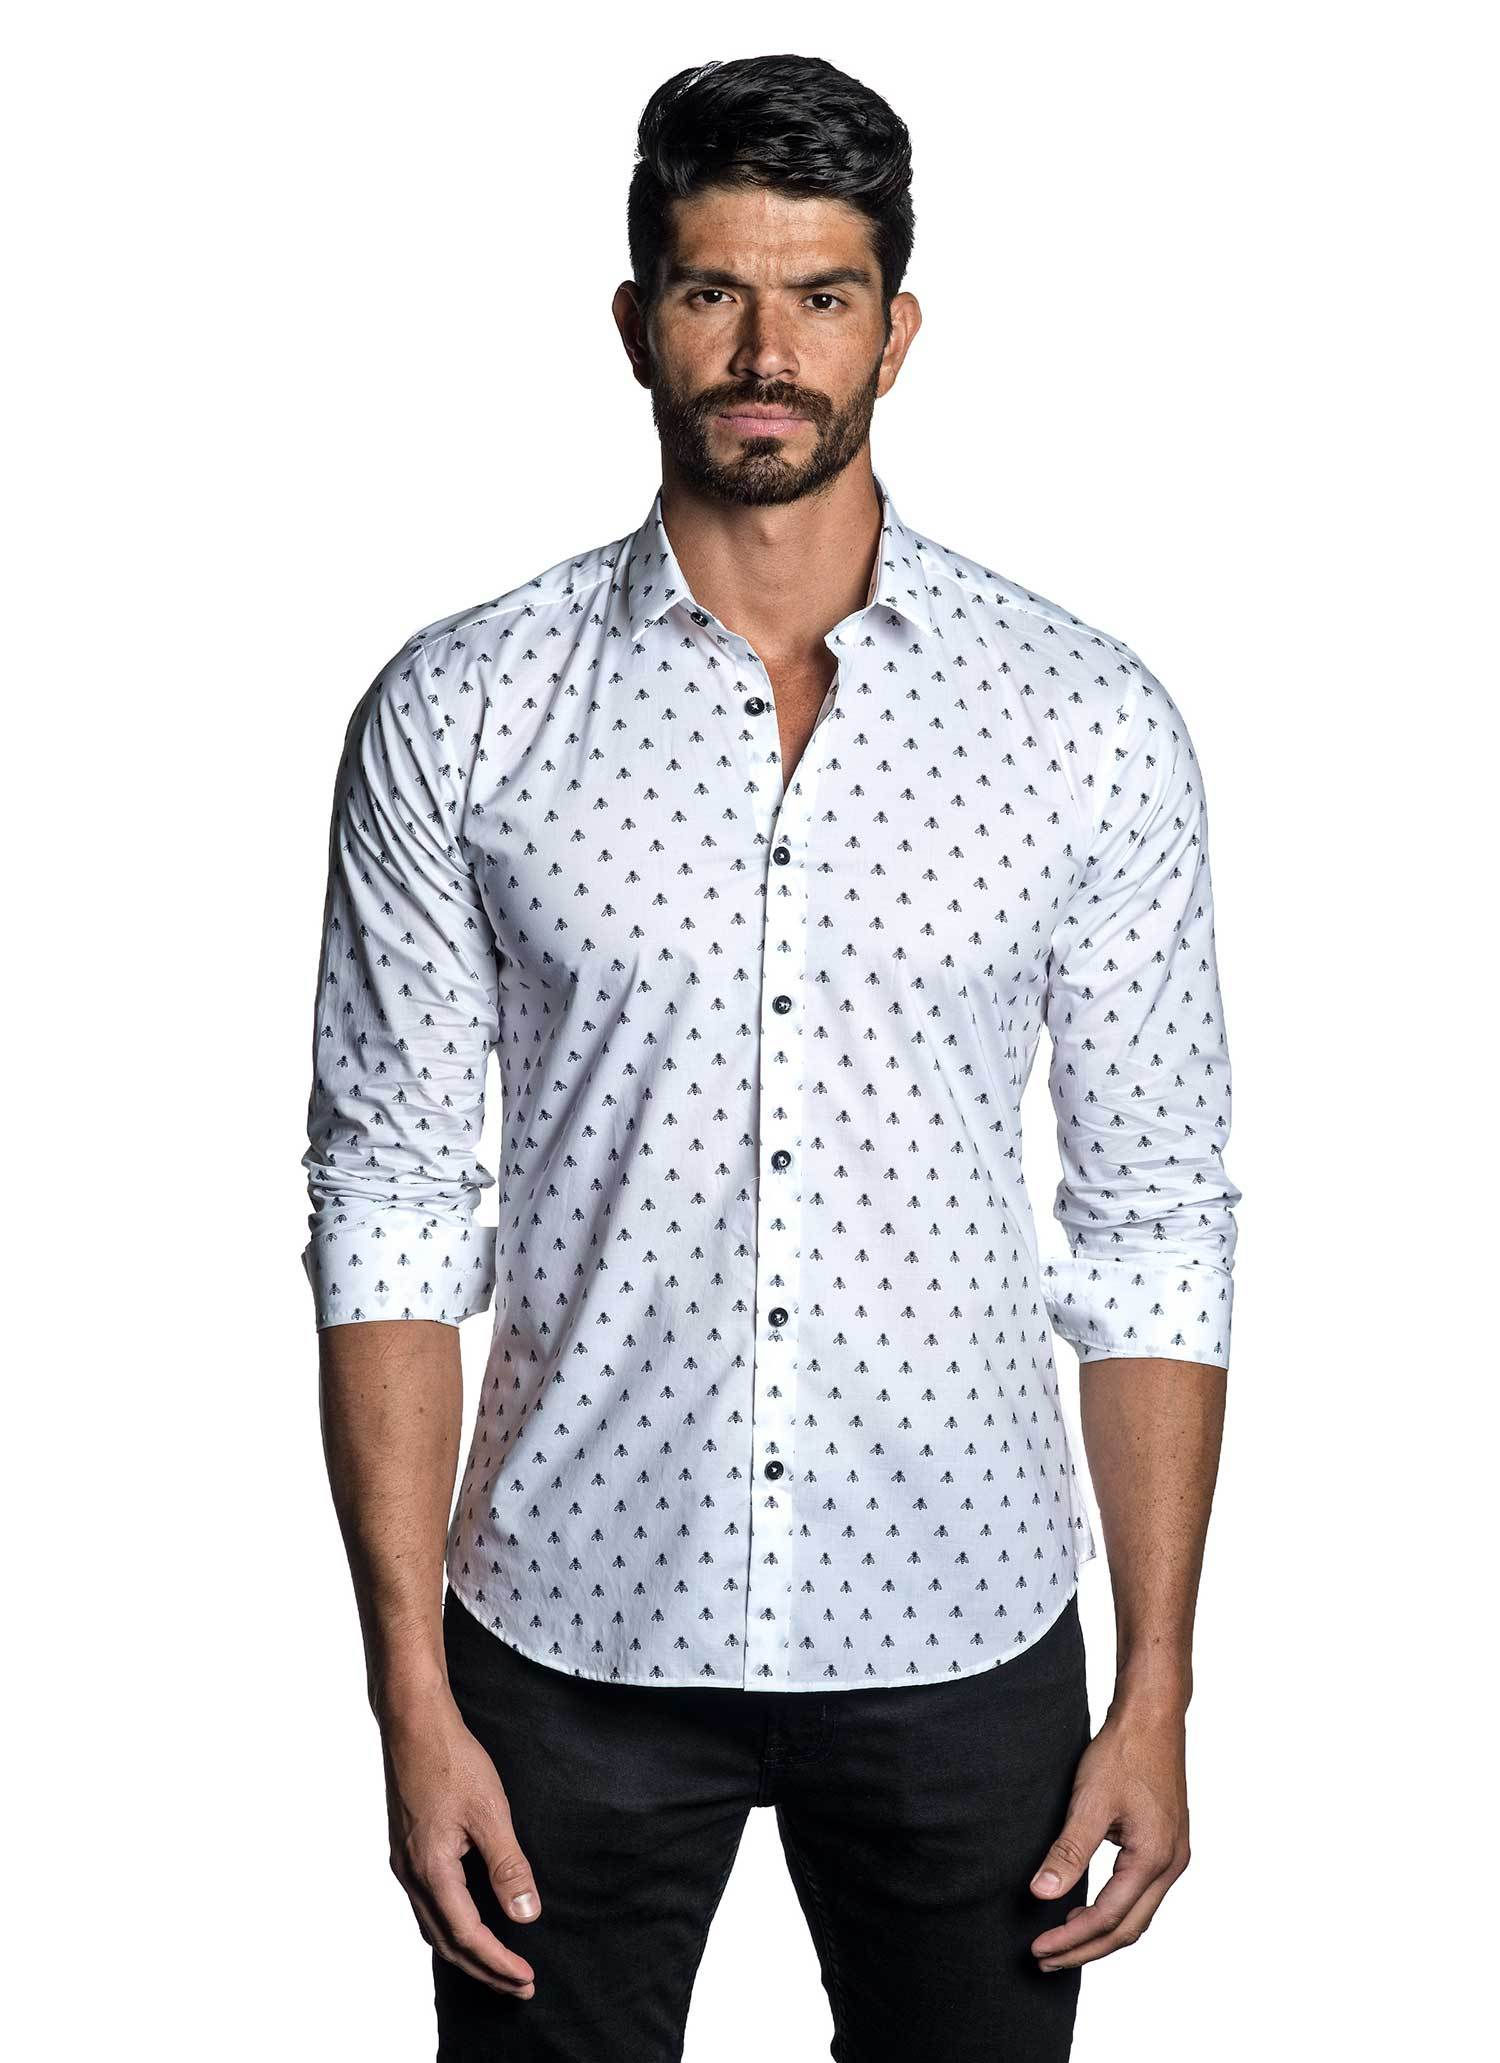 White and Black Jacquard Shirt for Men - front AH-T-7033 - Jared Lang